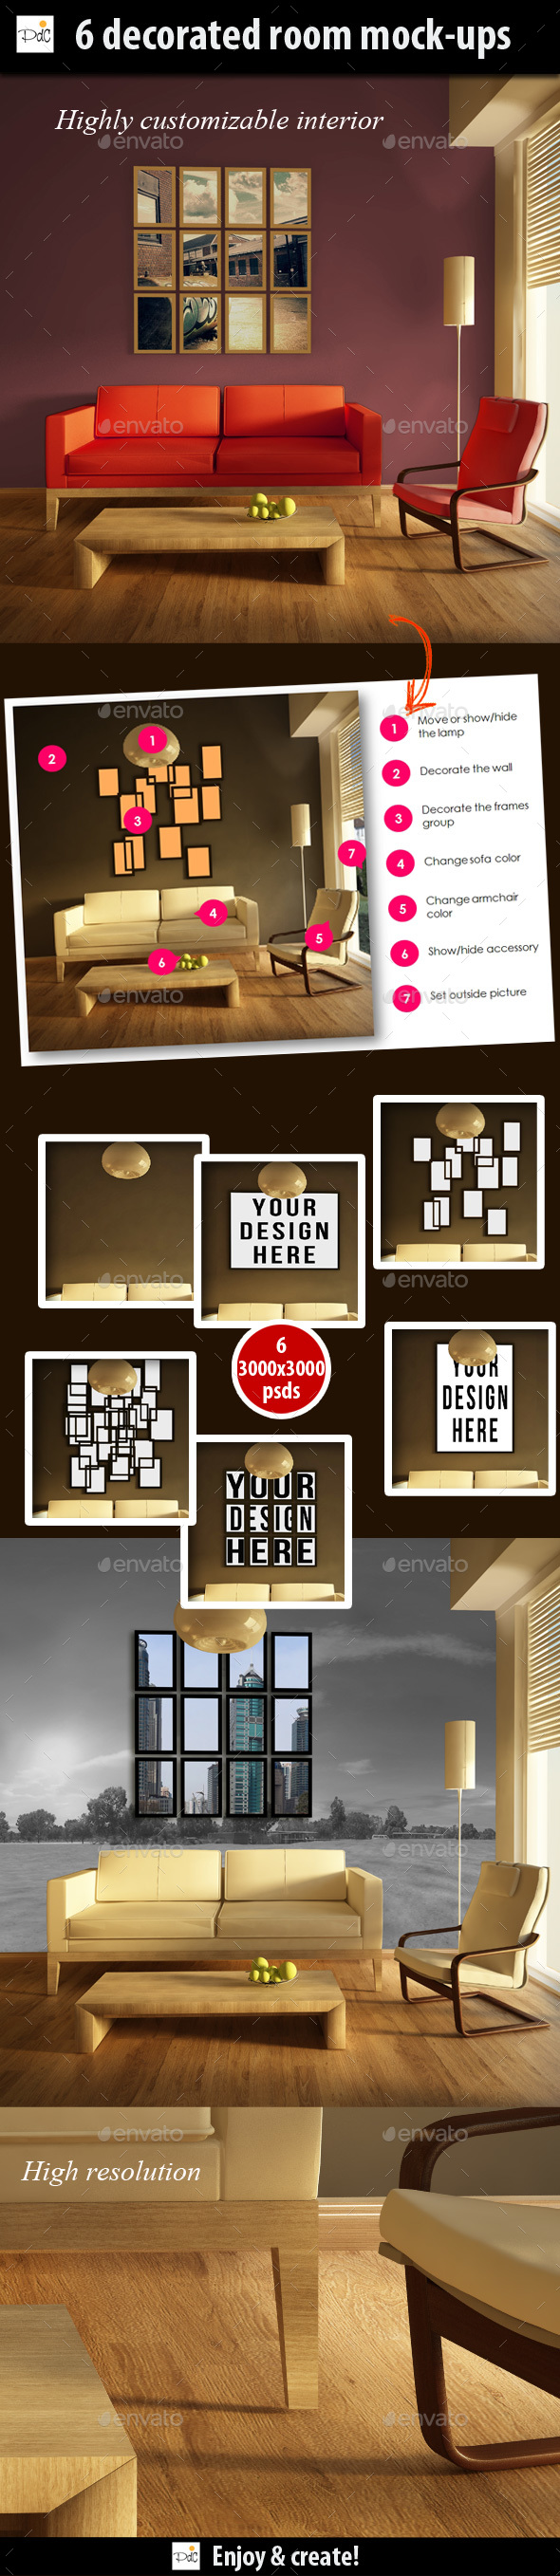 Decorated room with wall and photo frames mock-ups - Miscellaneous Product Mock-Ups